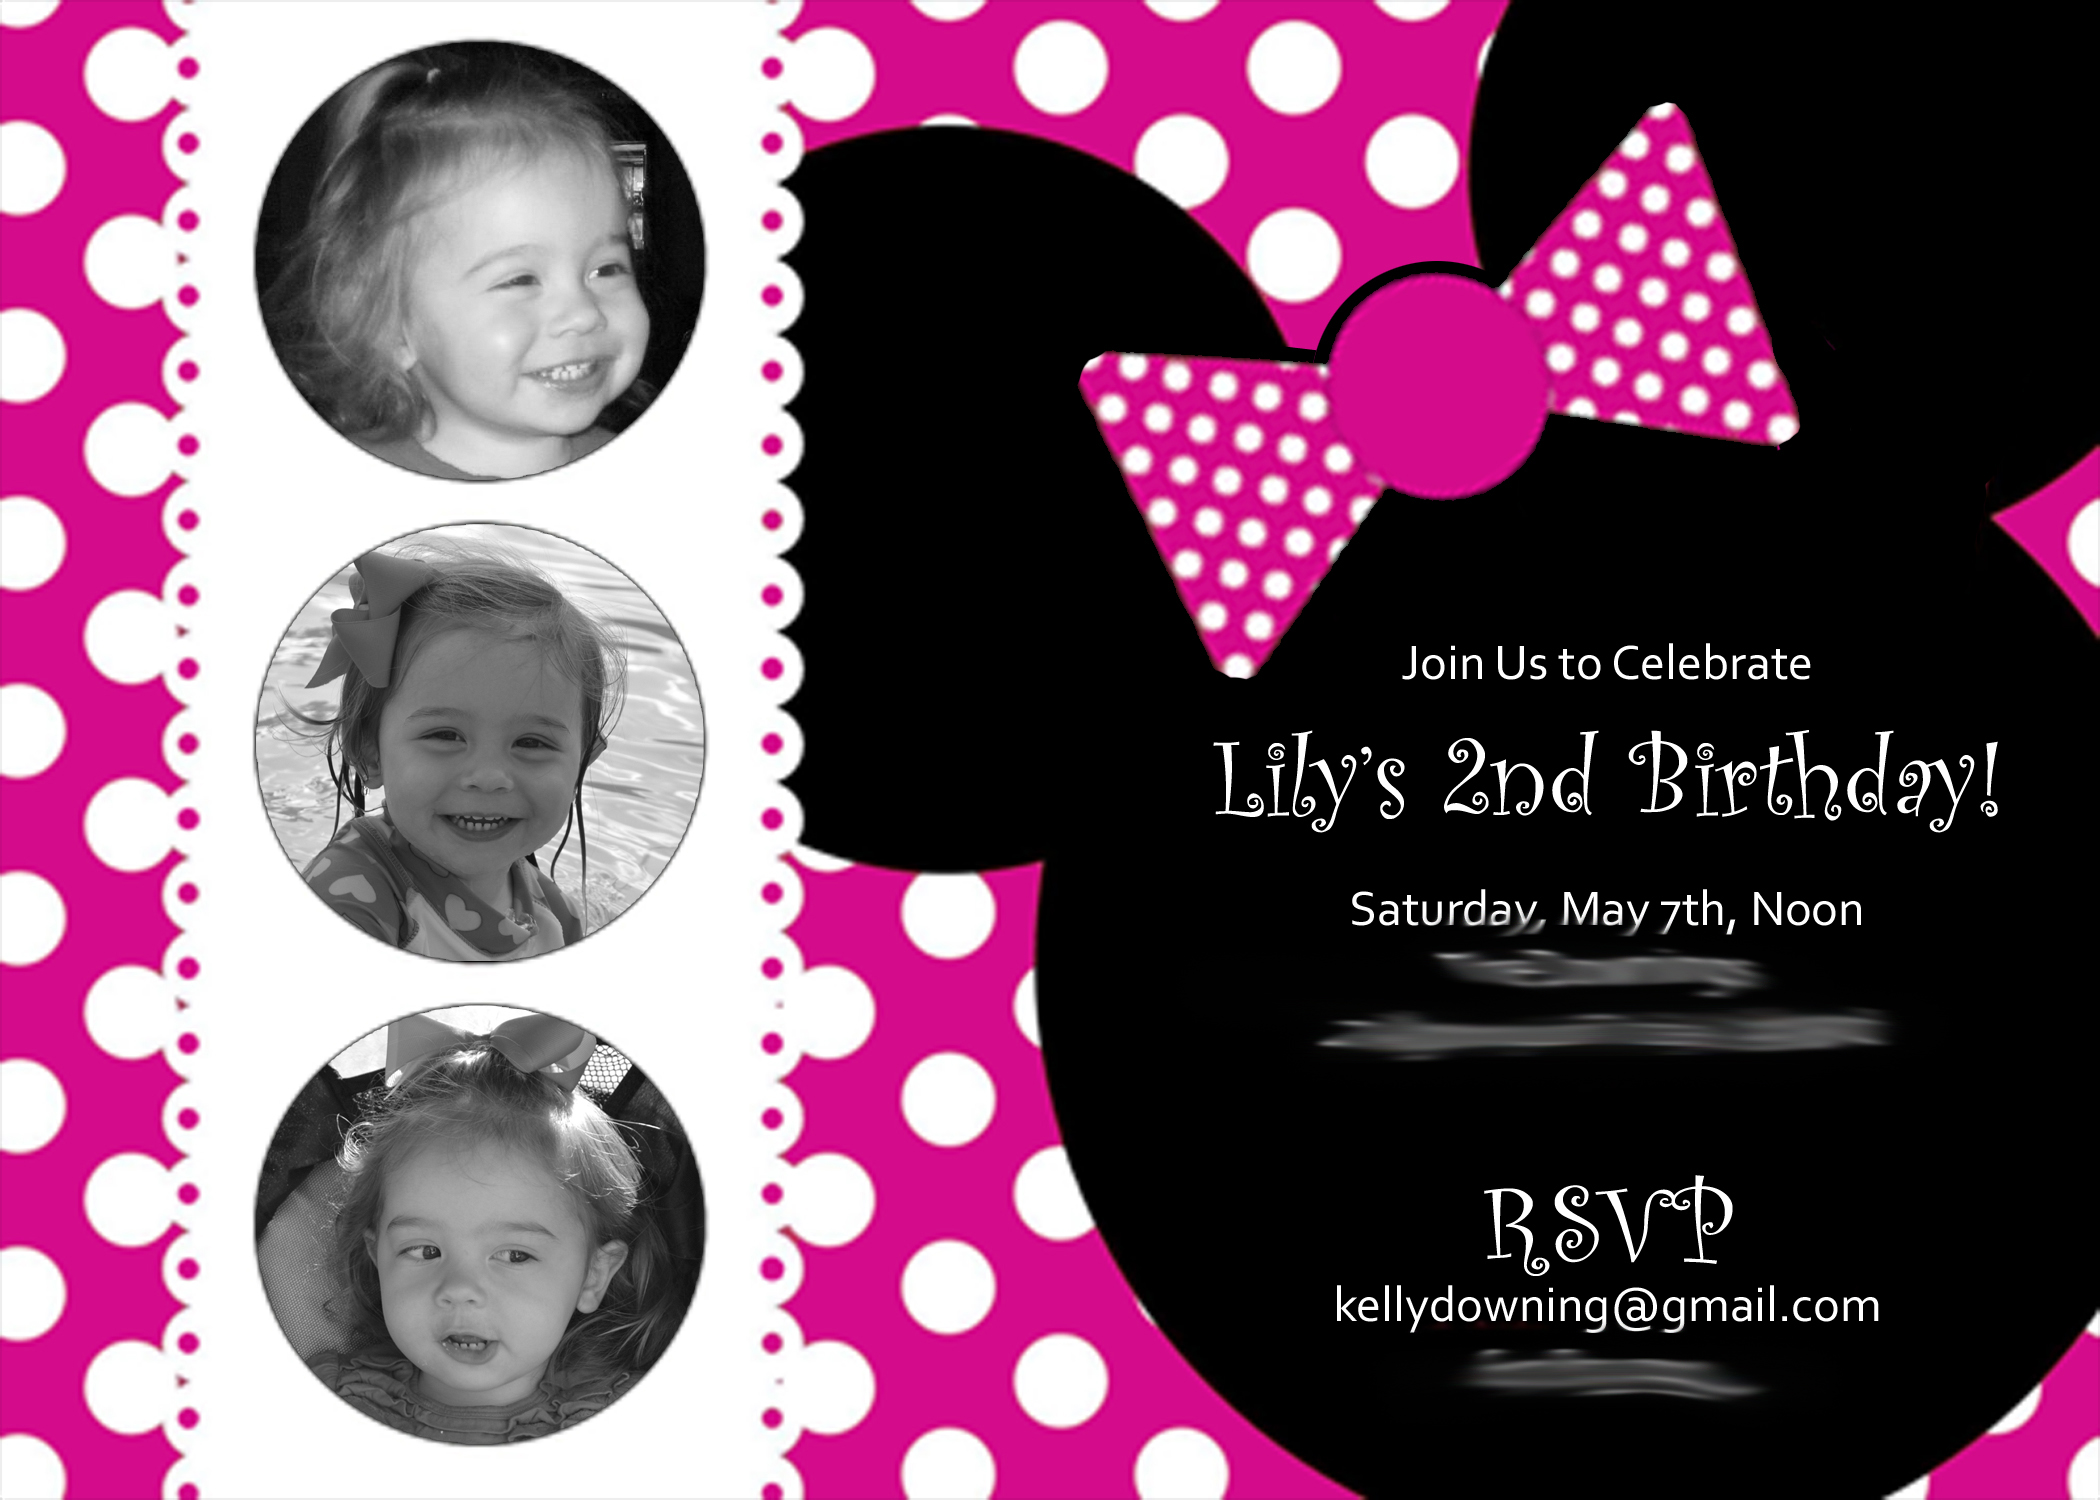 birthday invitation minnie mouse theme ; Minnie-Mouse-Birthday-Invitation-Wording-For-2Nd-Birthday-and-get-inspiration-to-create-the-birthday-Invitation-design-of-your-dreams-1